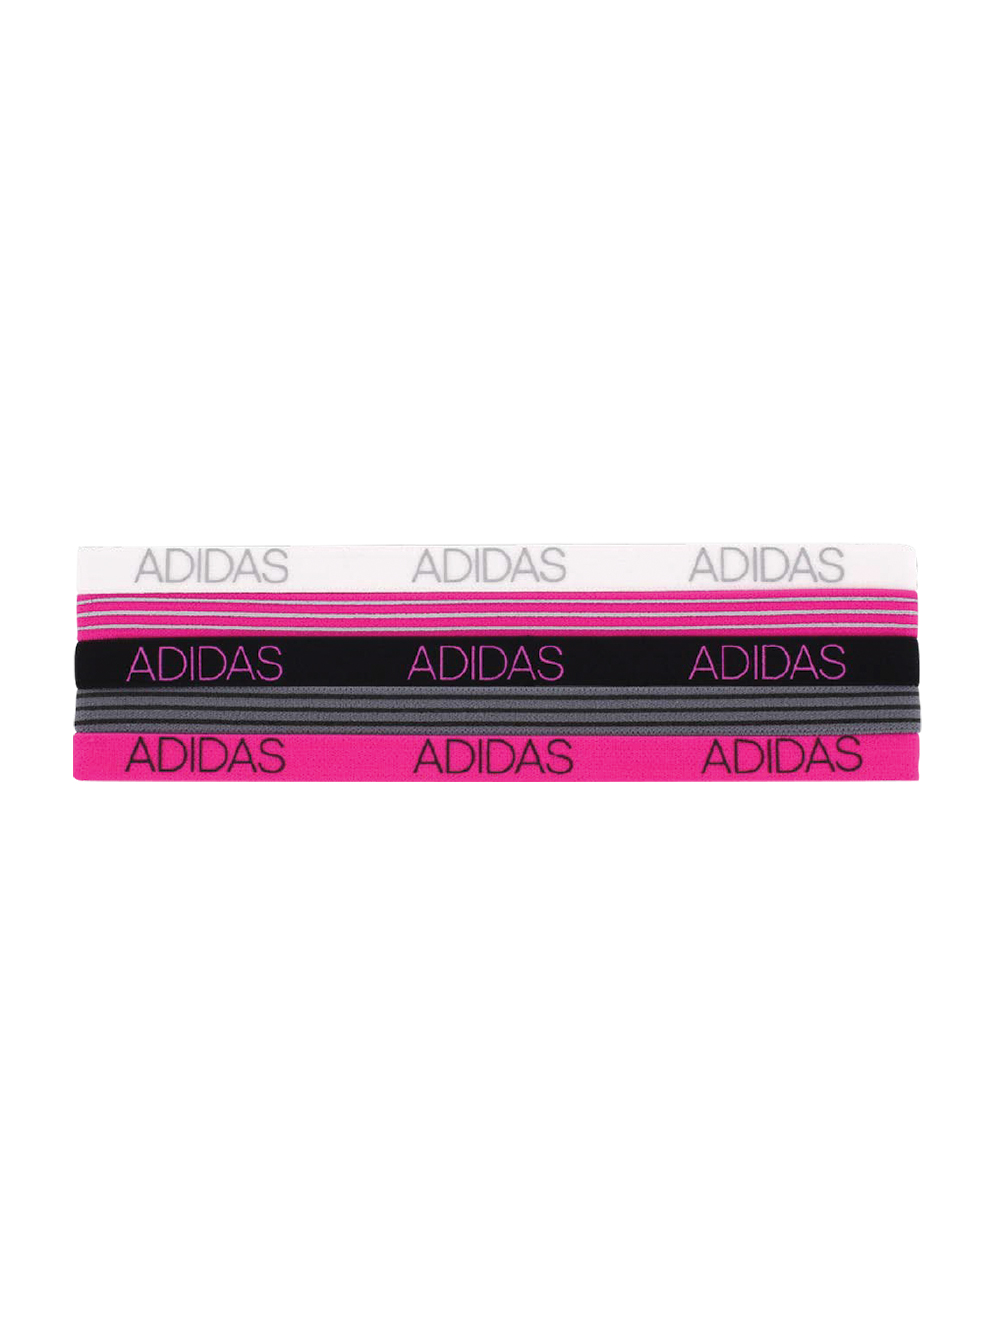 Adidas 5 Pk Headbands Midwest Volleyball Warehouse